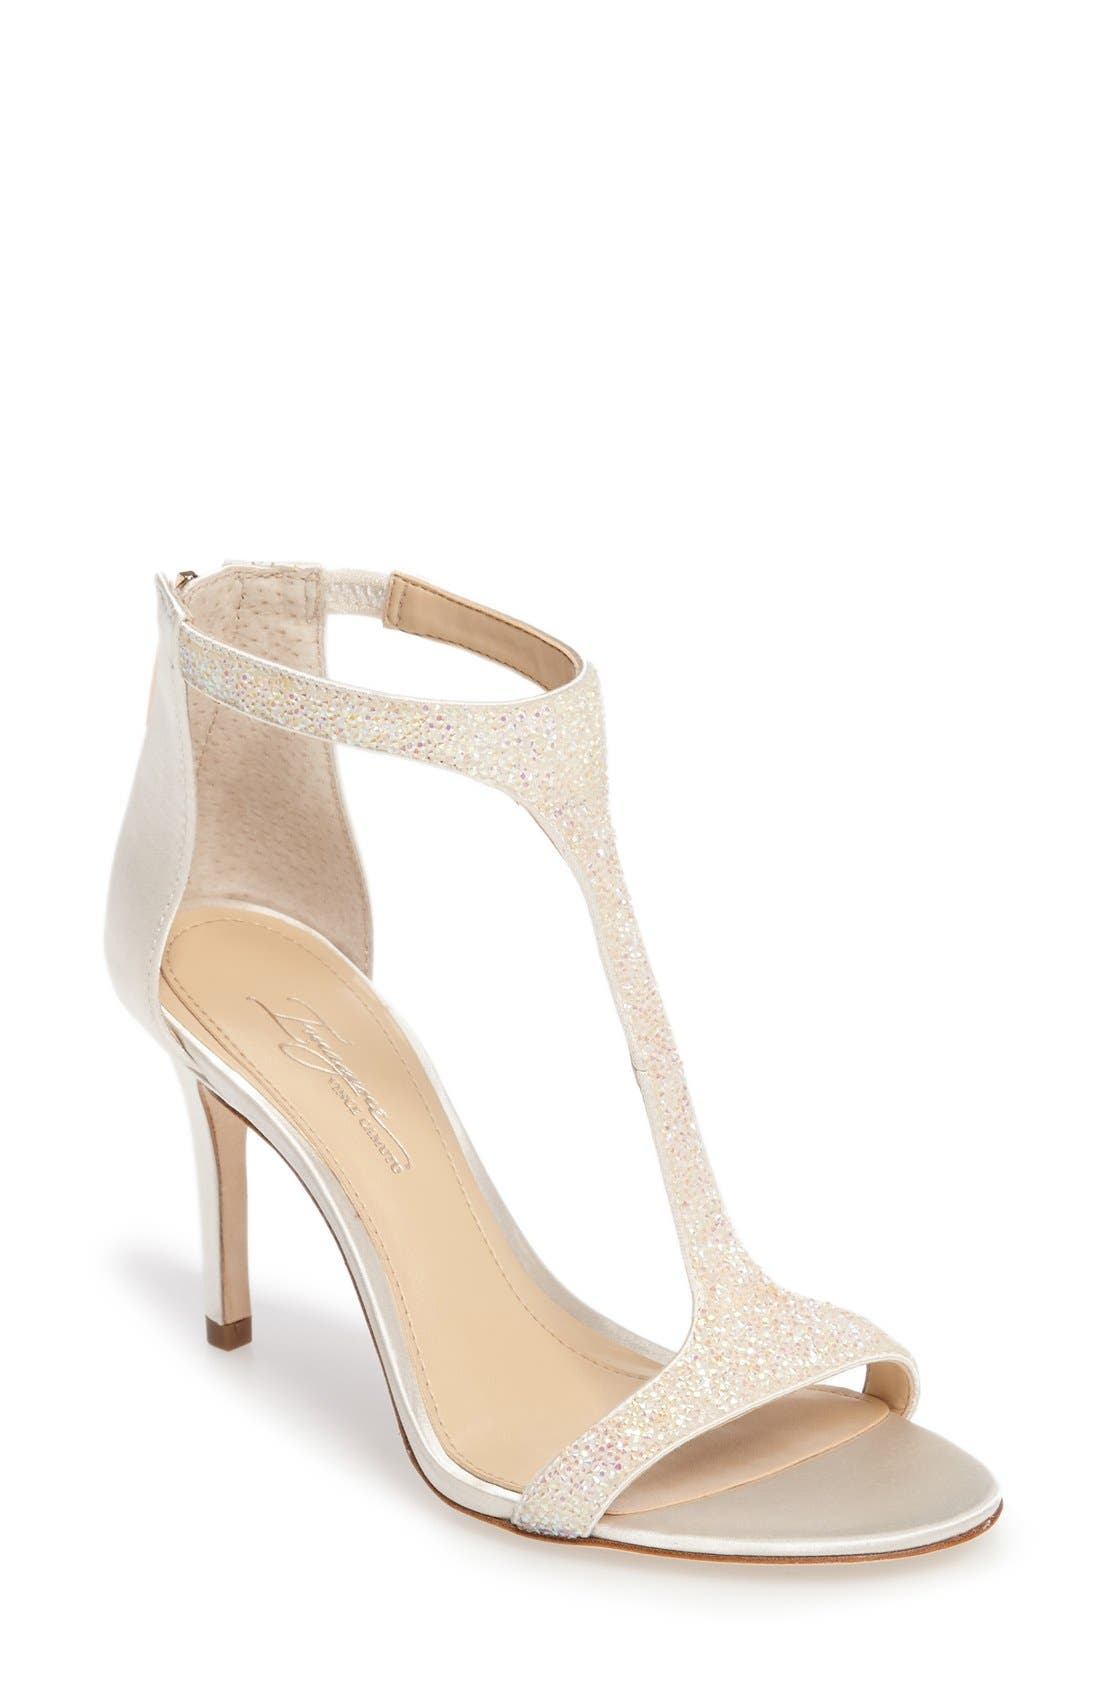 Alternate Image 1 Selected - Imagine by Vince Camuto 'Phoebe' Embellished T-Strap Sandal (Women)